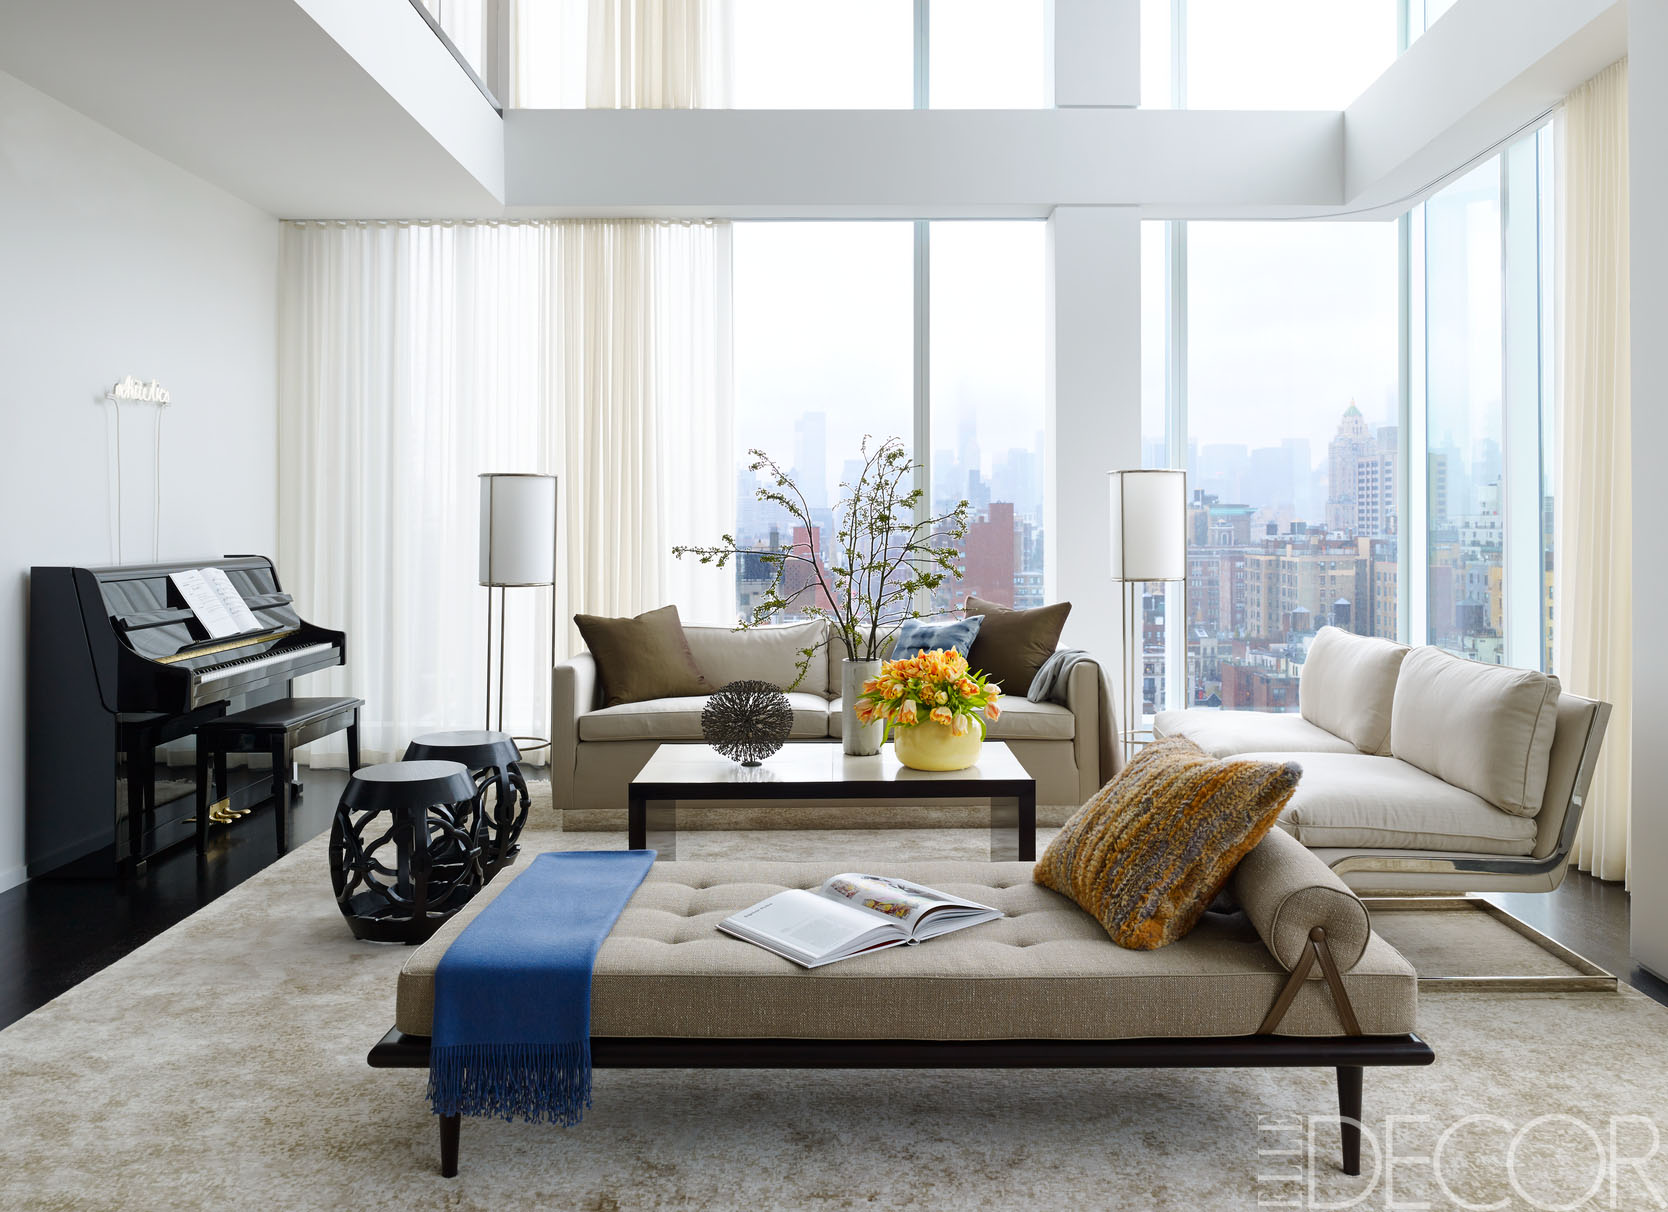 HOUSE TOUR: A New York Penthouse Shows The Cozy Side Of ...